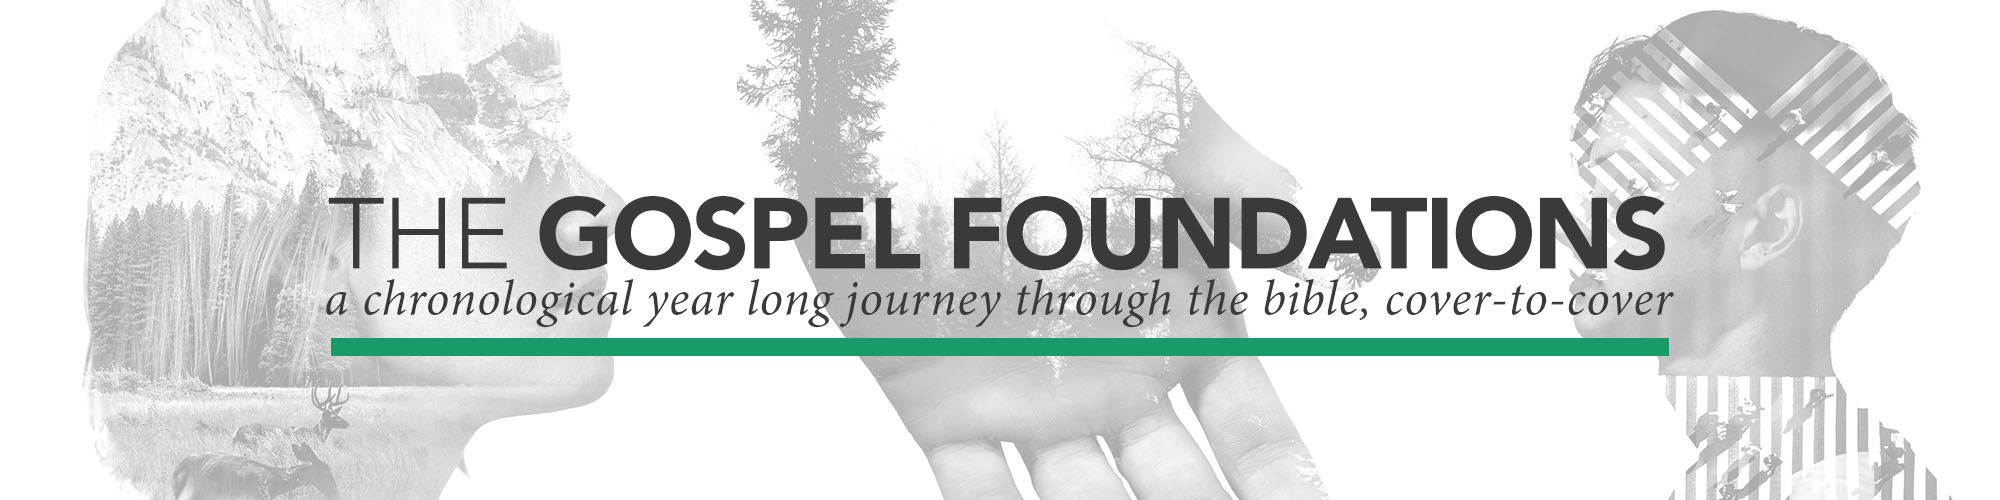 The Gospel Foundation